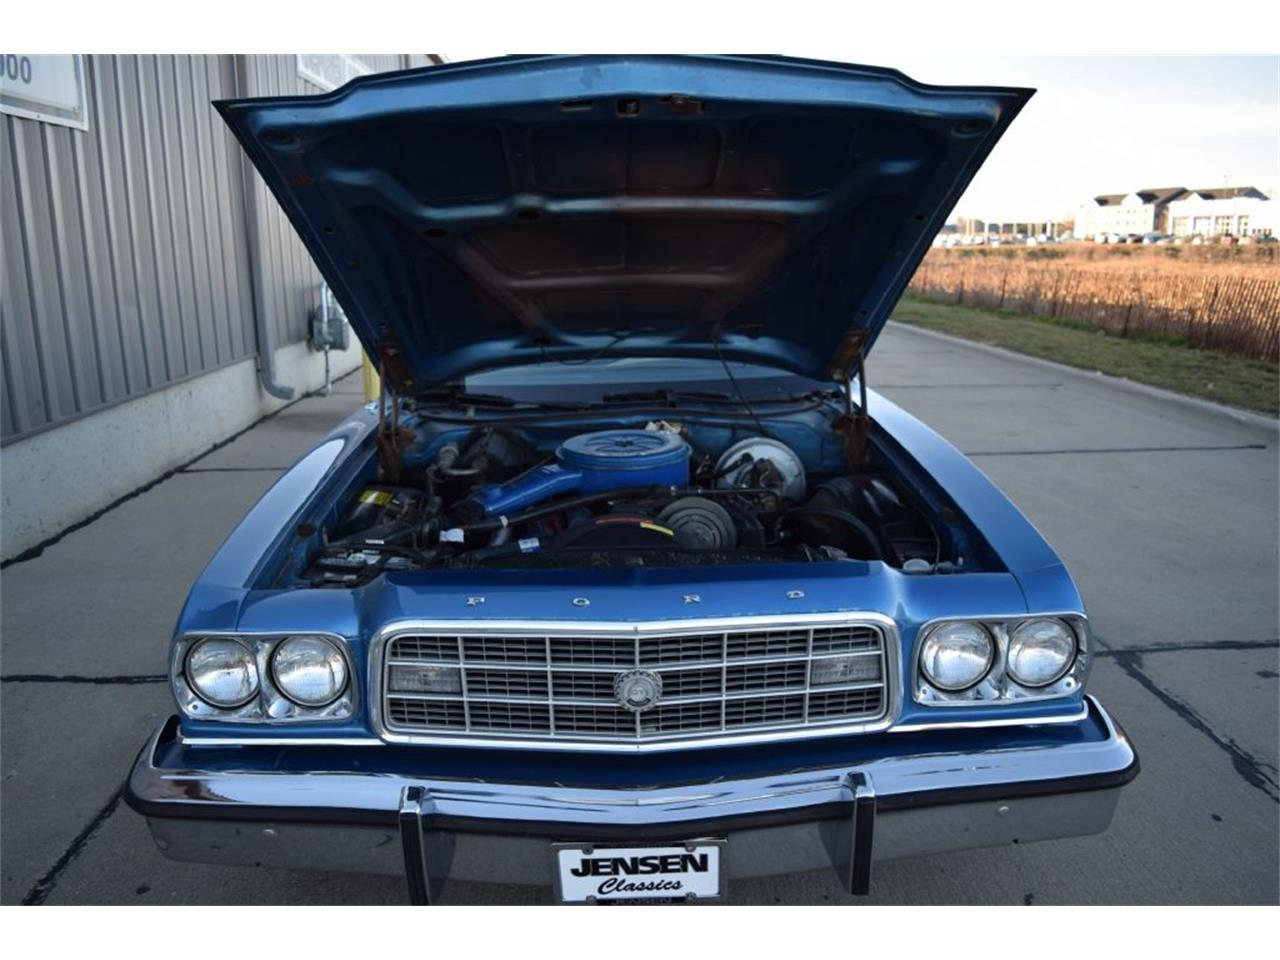 Large Picture of Classic '73 Ford Ranchero Offered by Jensen Dealerships - MDYE